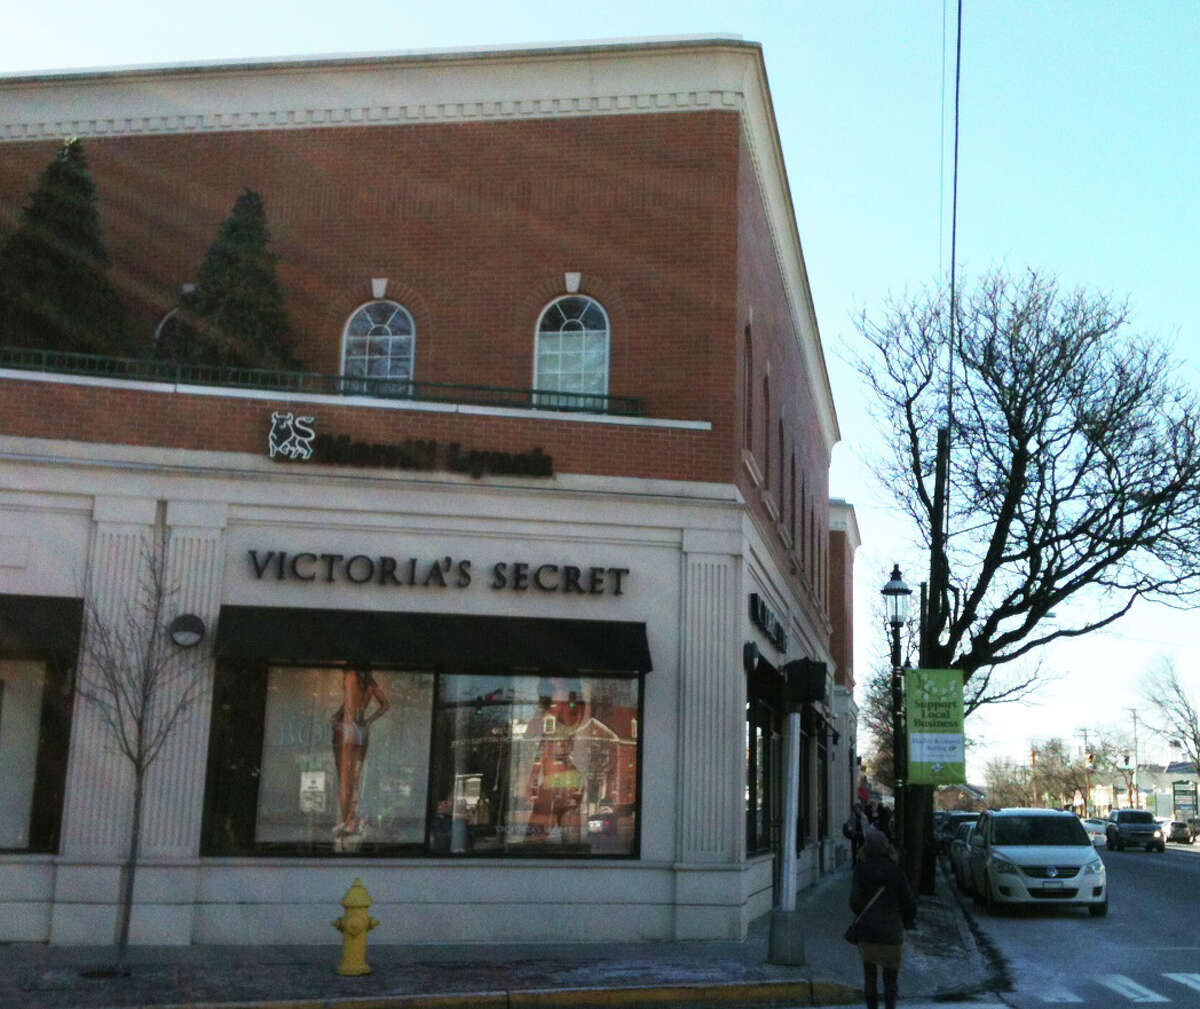 The site where the Fairfield Store once stood, corner of Post and Reef roads, is now the location for a renovated, expanded commercial structure that houses multiple outlets, including Victoria's Secreat and the Fairfield University Bookstore. FAIRFIELD CITIZEN, CT 1/29/13